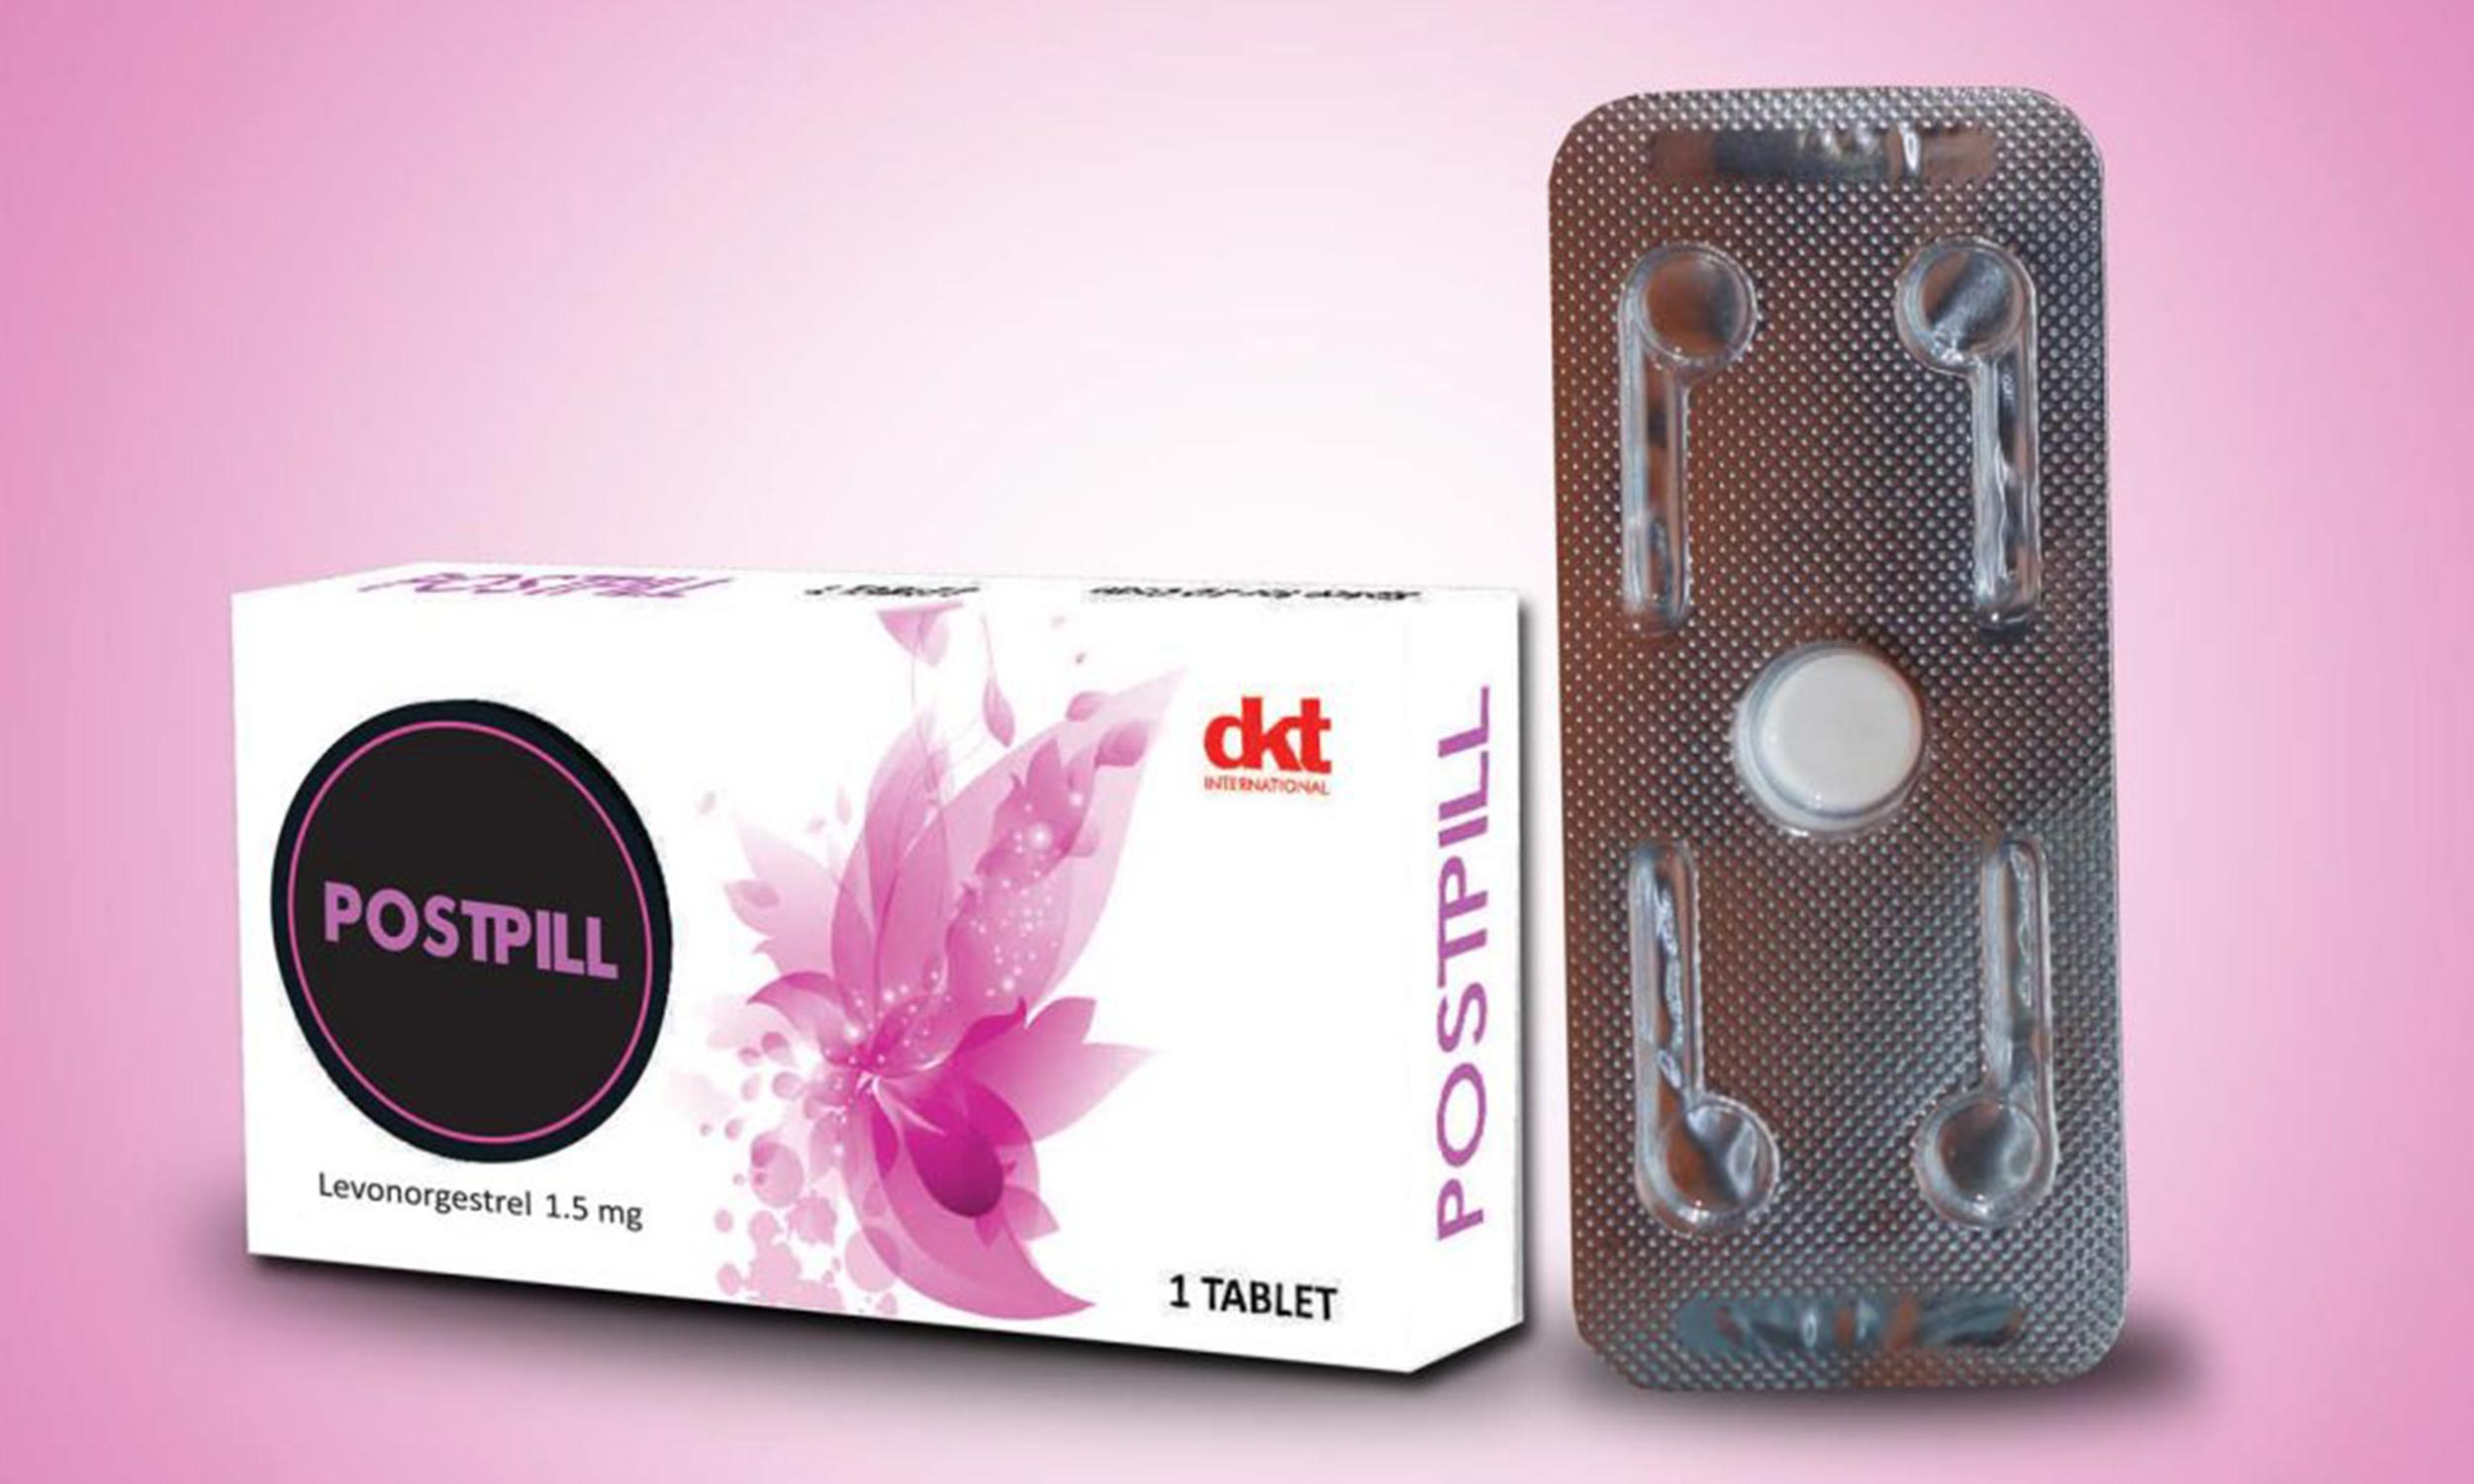 post-pill-bg-dkt-resized-product-images